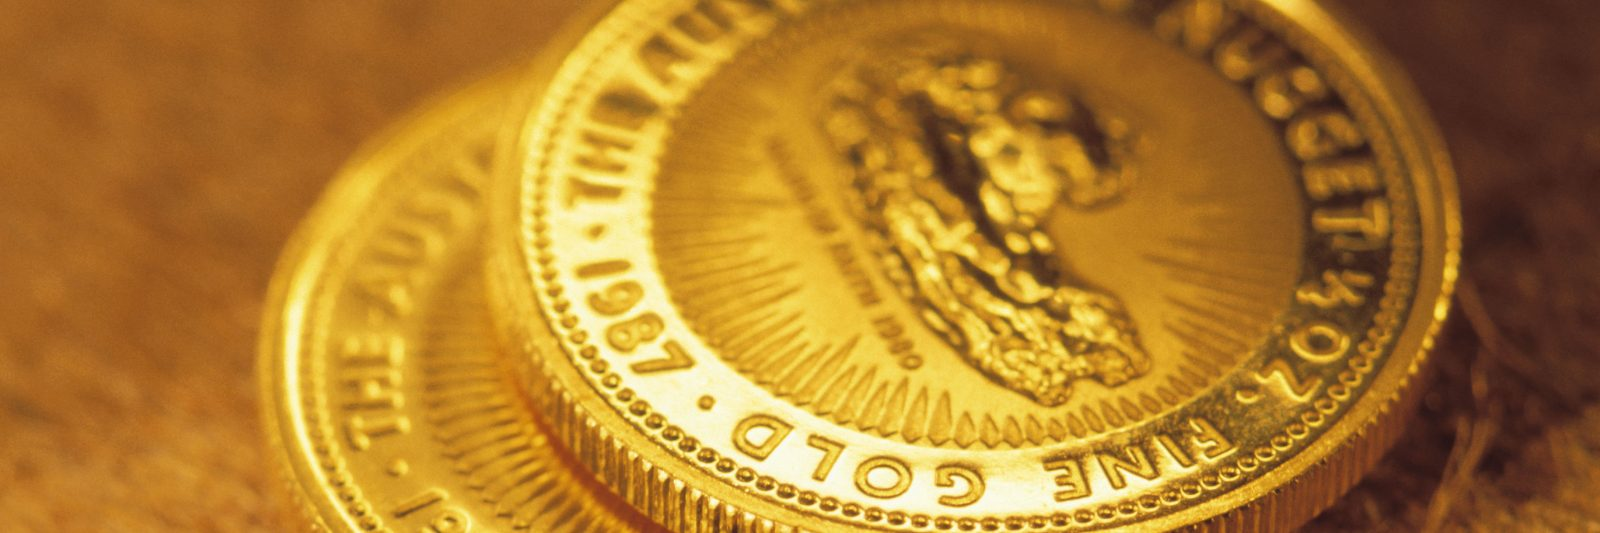 Sell Gold Coins for Cash | PostGold Cash